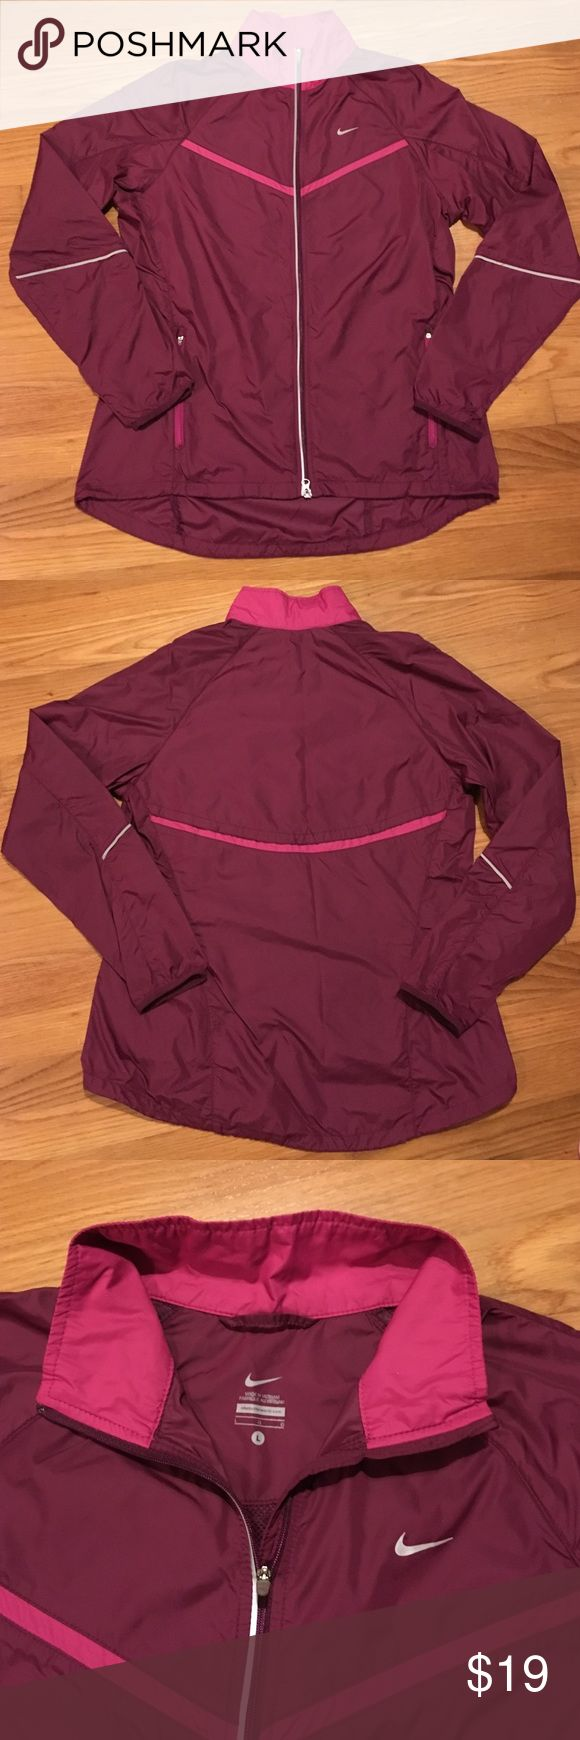 "Nike windbreaker running jacket. Nike windbreaker running jacket. Like new. Size large. Nike running jackets are made longer in the back than front. Shoulder to hem front 25.5"". Shoulder to hem back 28.5"". Material is just like the Nike tempo running shorts. Thin lightweight unlined  jacket.  Perfect for cool windy days. Zippered pockets and front with reflective trim on front and back of jacket and sleeves. Maroon color with pink trim. Nike Jackets & Coats"